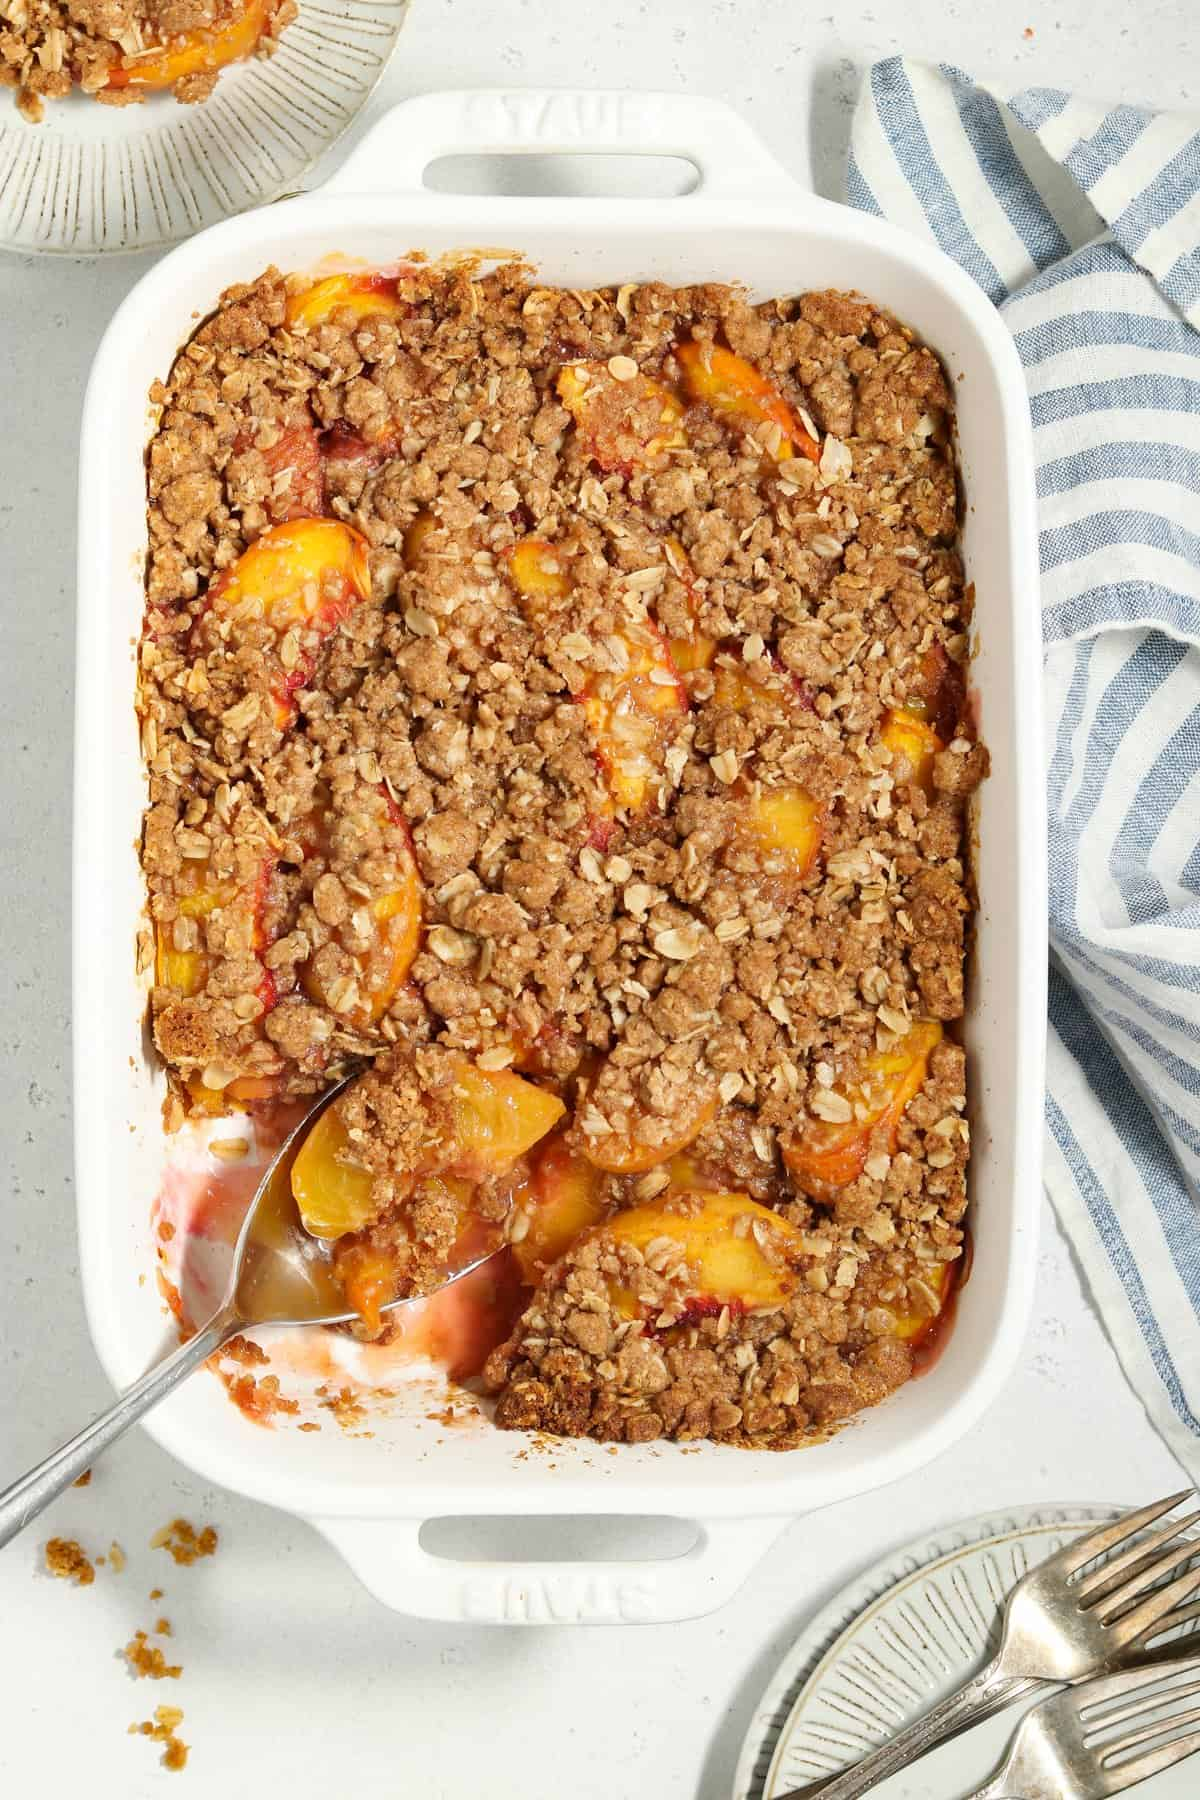 Overhead view of fully baked vegan peach crisp in a white casserole dish.